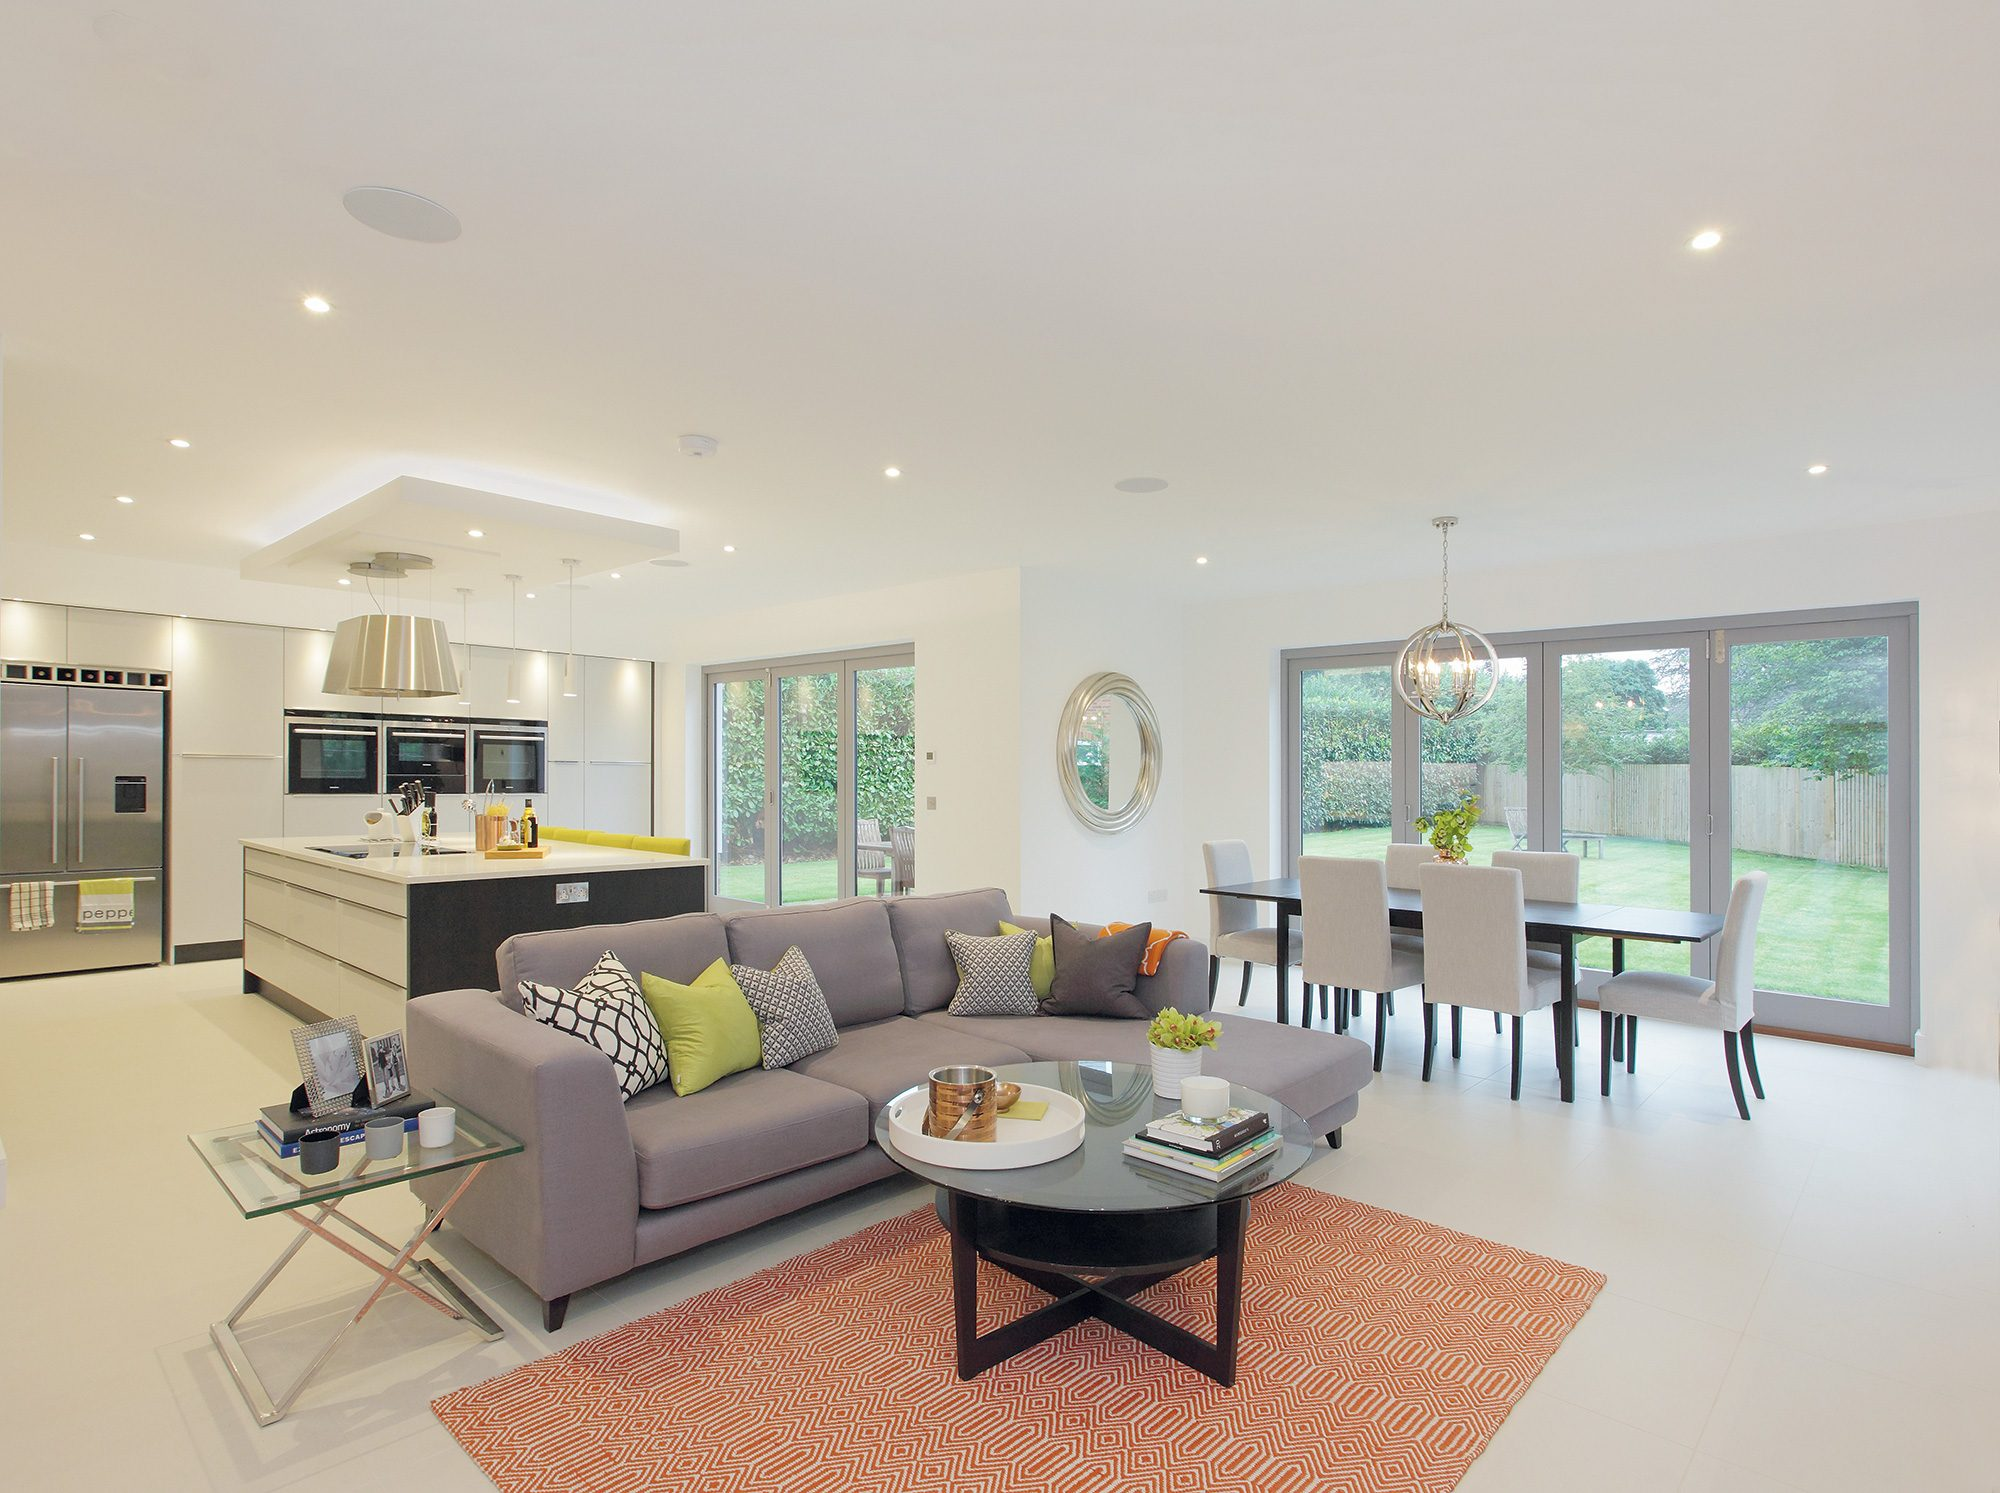 The Pros and Cons of Open Plan Home Design   Build It